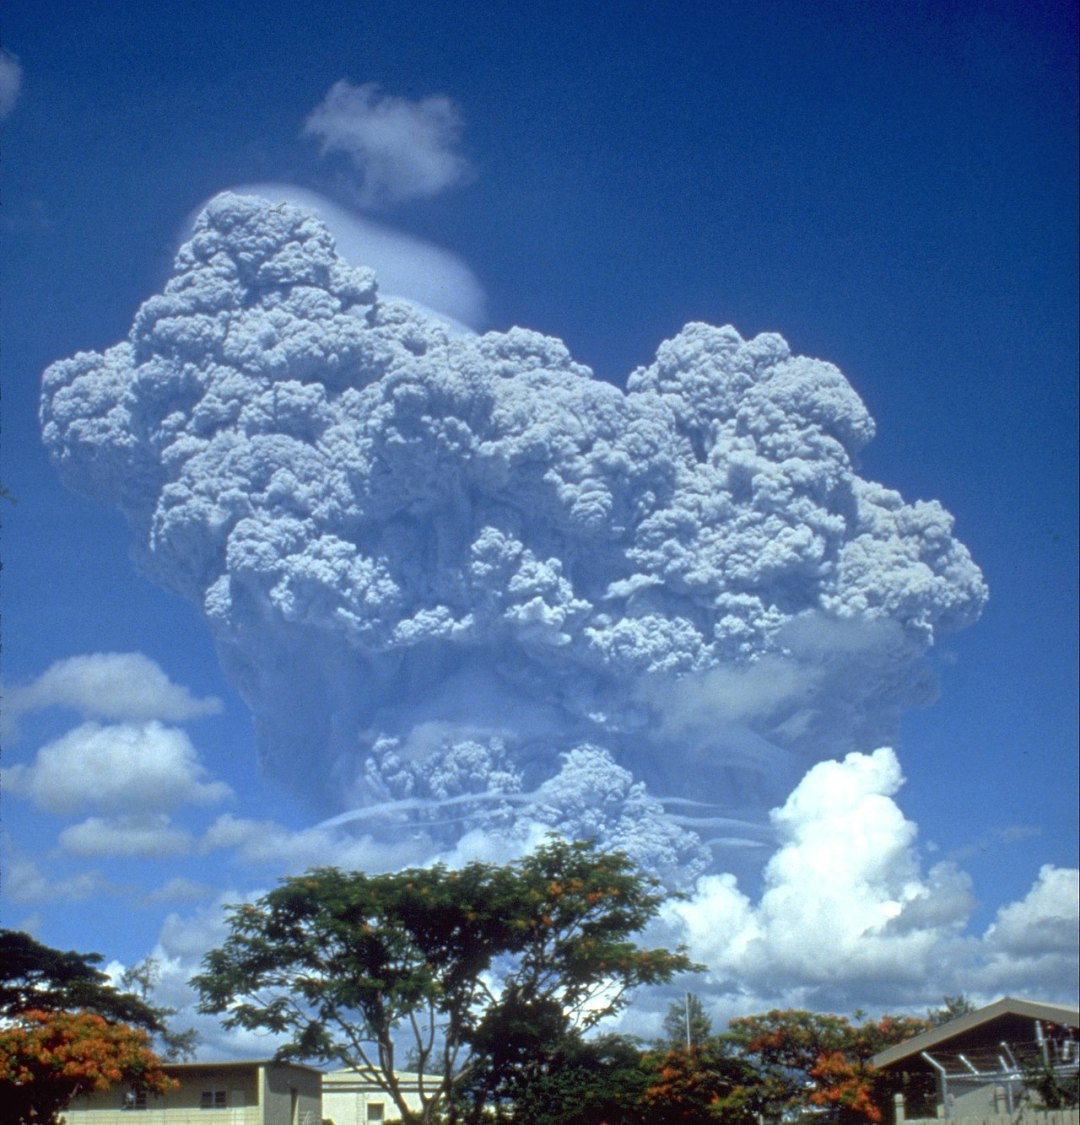 1280px-Pinatubo91eruption_clark_air_base.jpg